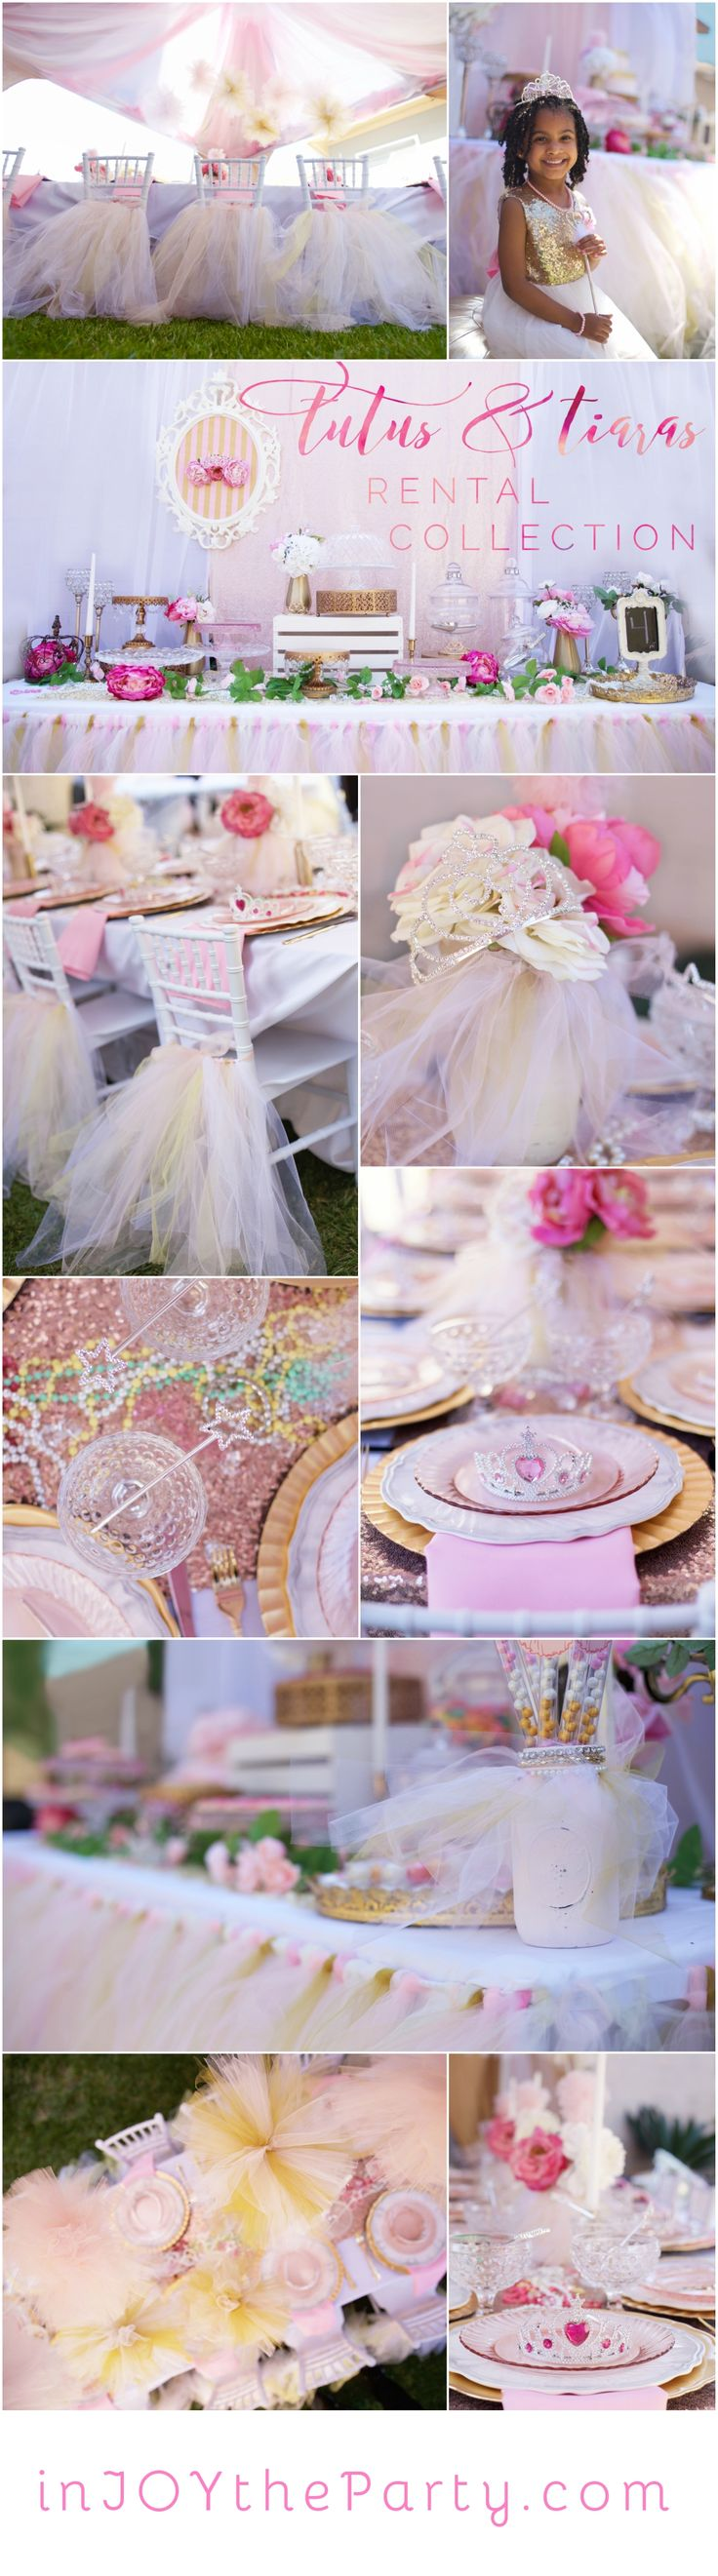 A Princess Party rental collection with an ensemble of pink tutu centerpieces, white chiavari chairs, glittery runners, pink and white flowers, and sparkling tiaras. DIY Parties minus the time & money! @inJOYtheParty